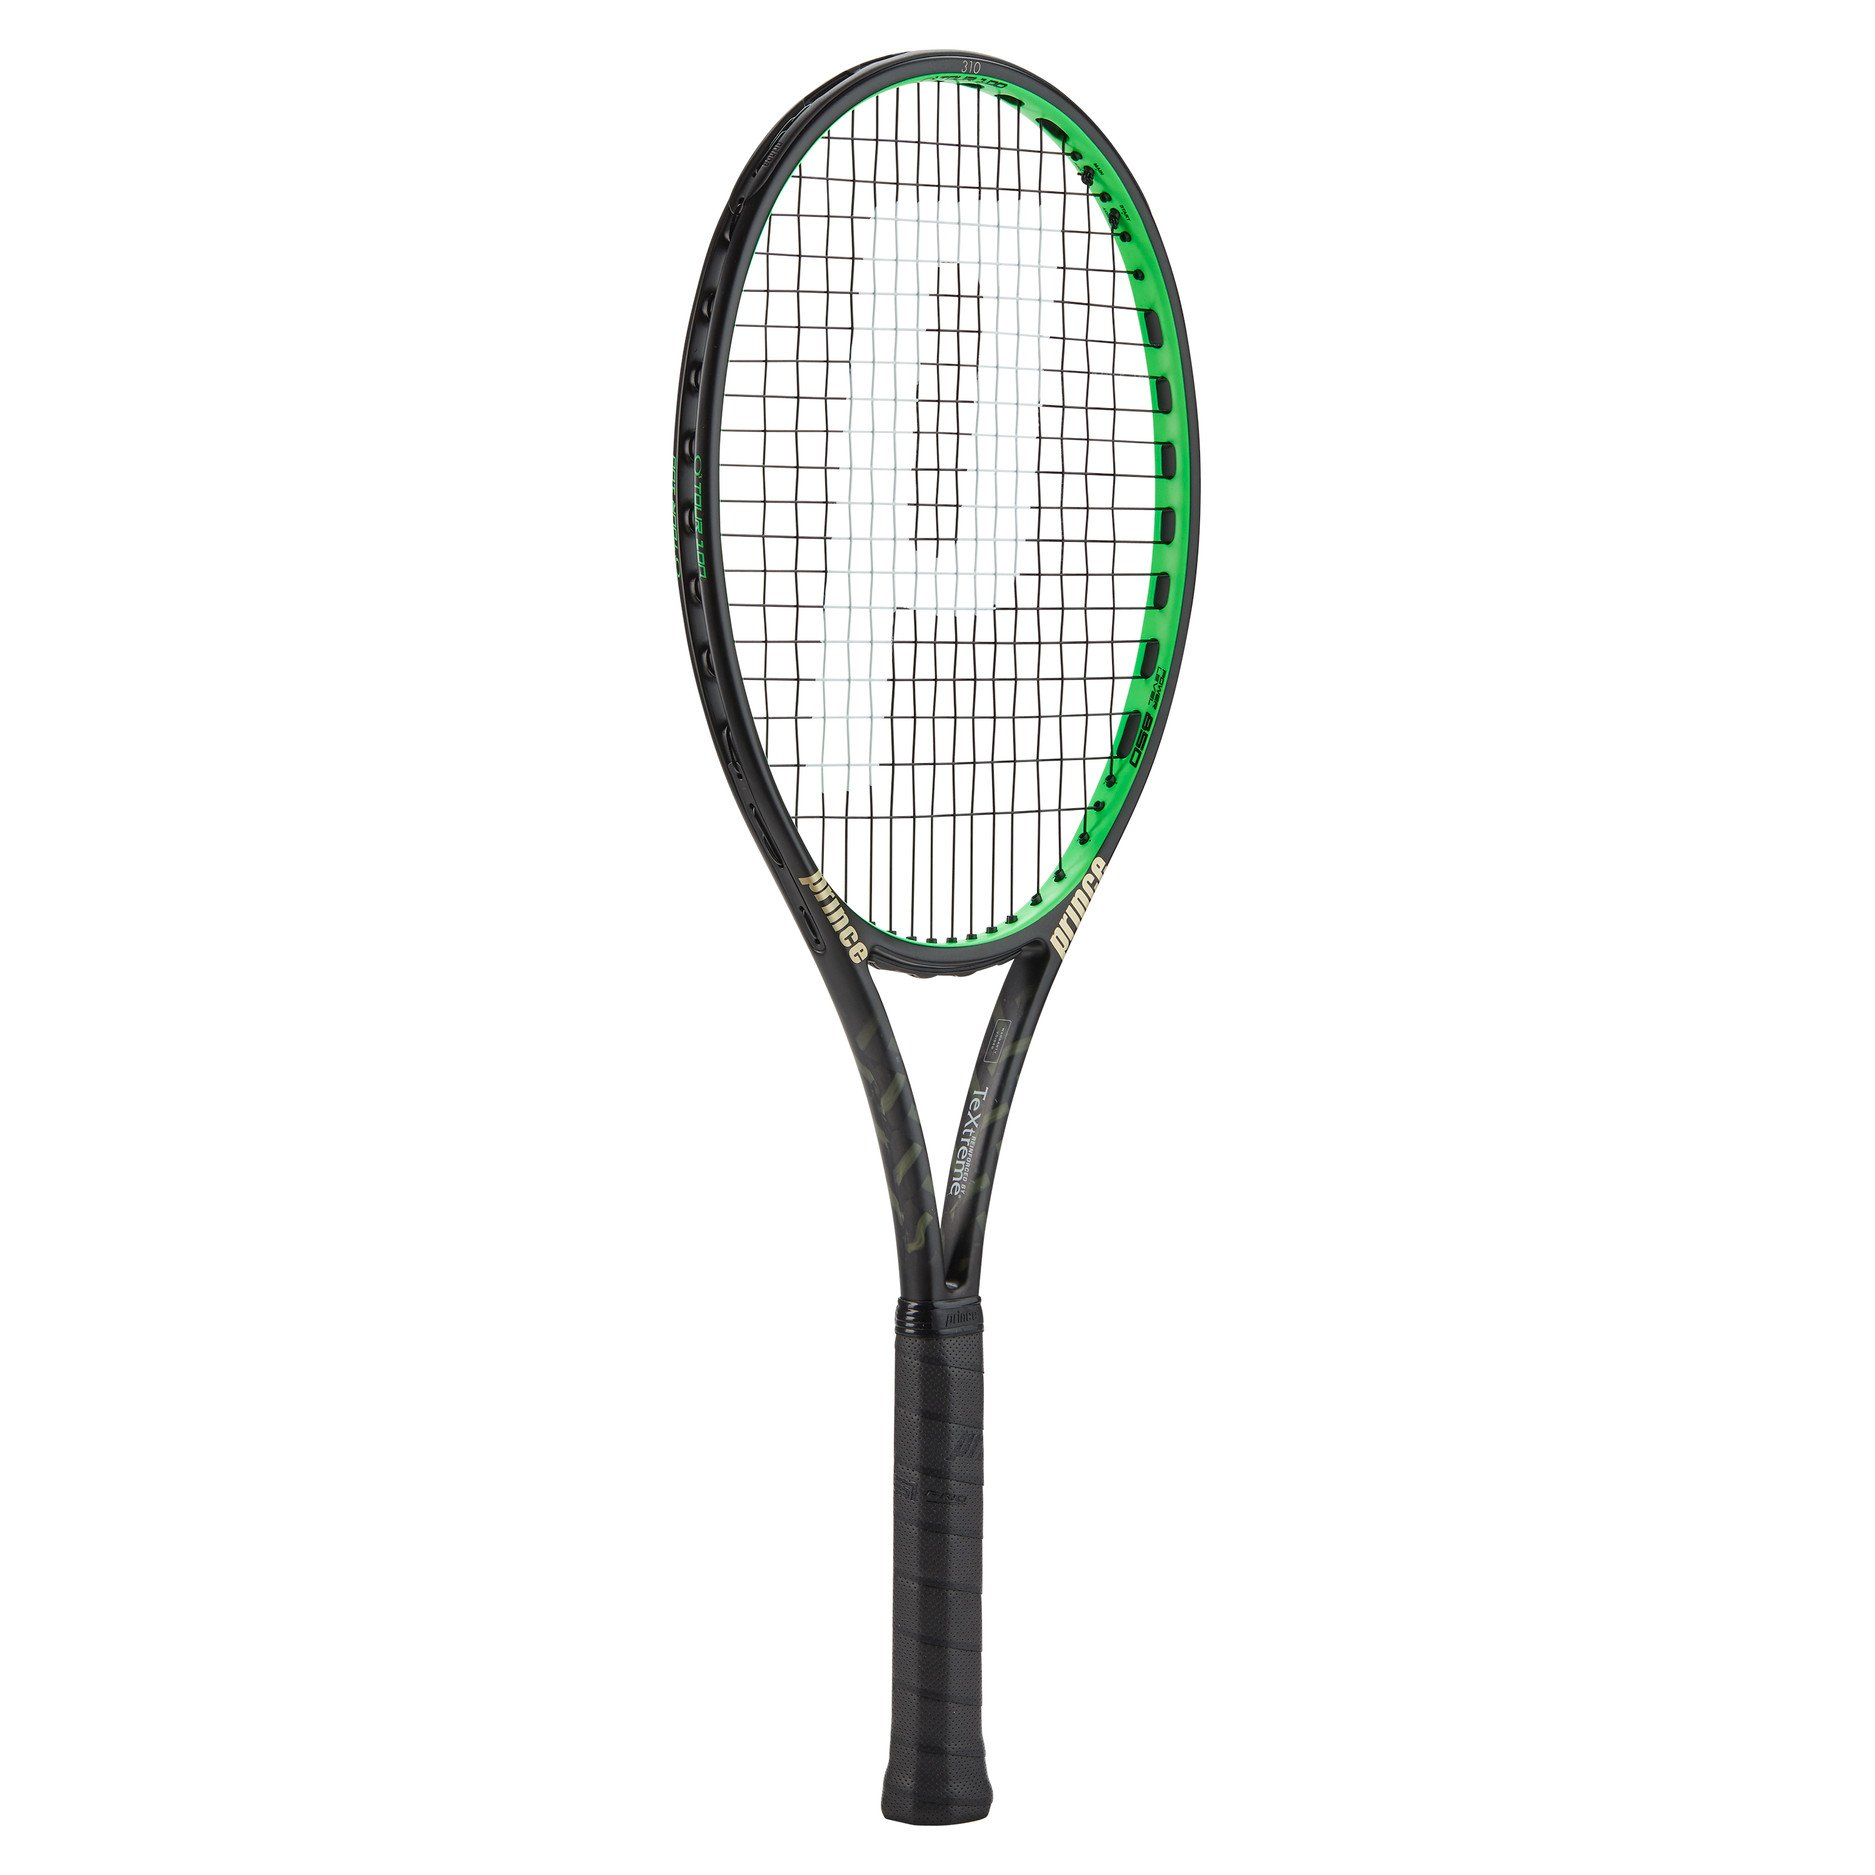 Tennis Racket – Prince O3 Tour 100 (310g)